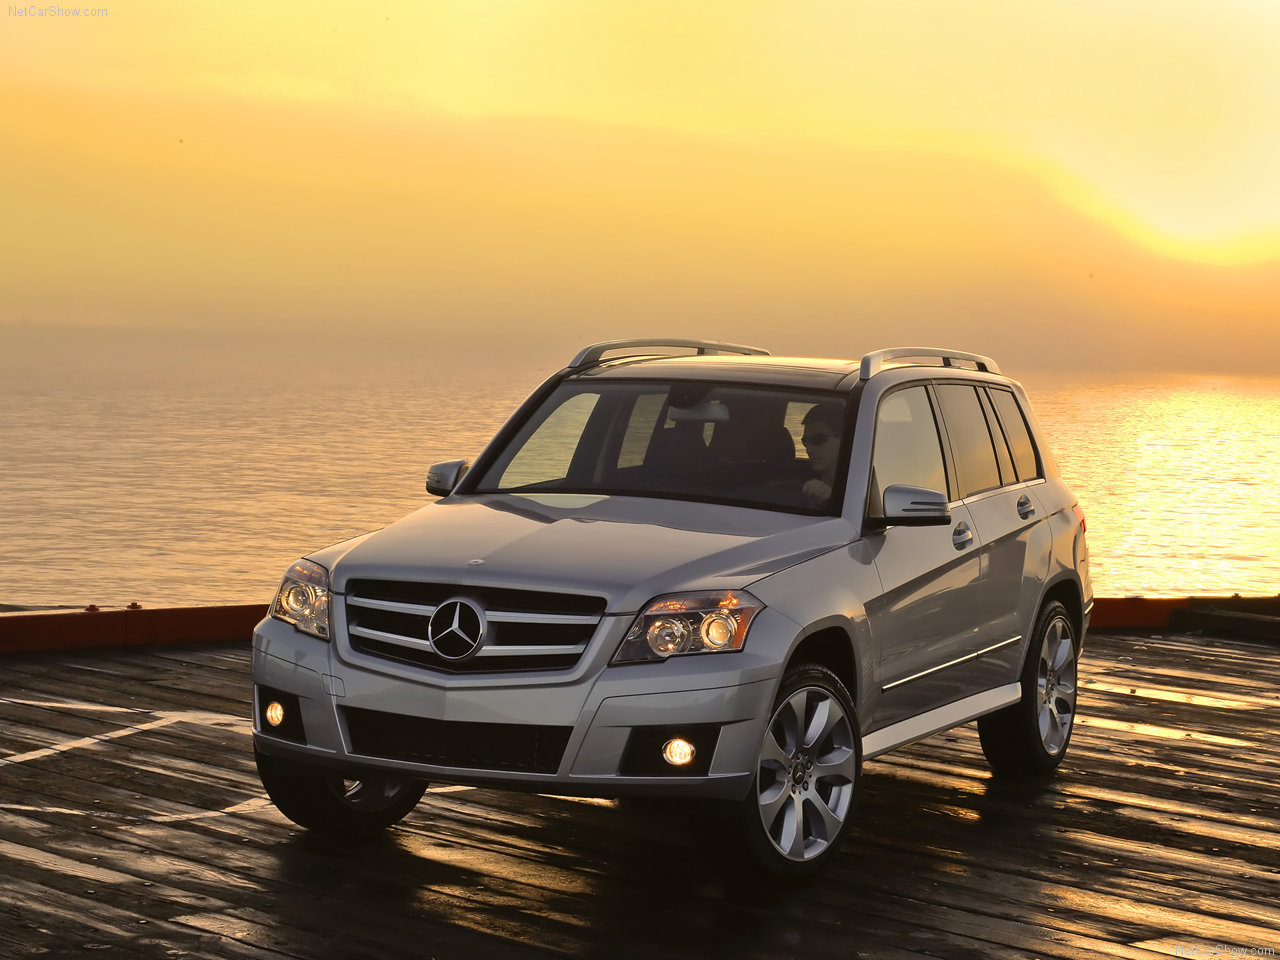 2010 mercedes benz glk 350 4matic mercedes benz cars. Black Bedroom Furniture Sets. Home Design Ideas